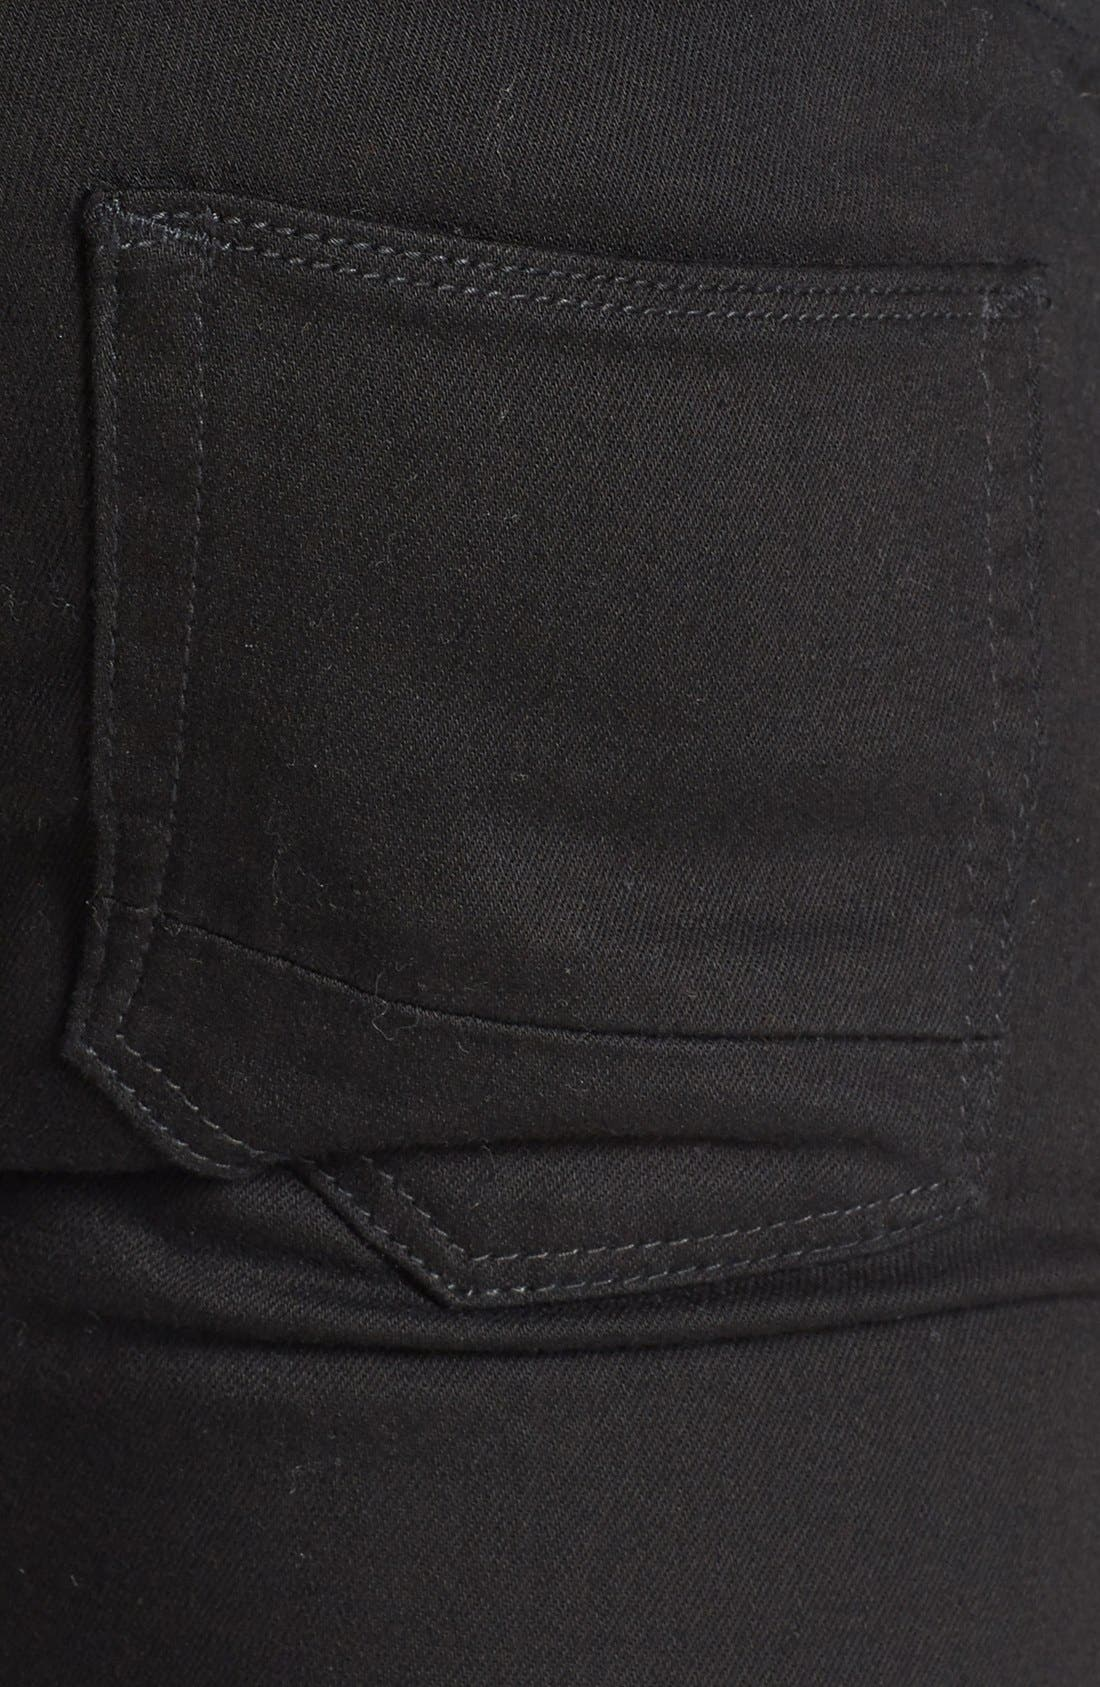 TOPMAN, Stretch Skinny Fit Jeans, Alternate thumbnail 5, color, 001